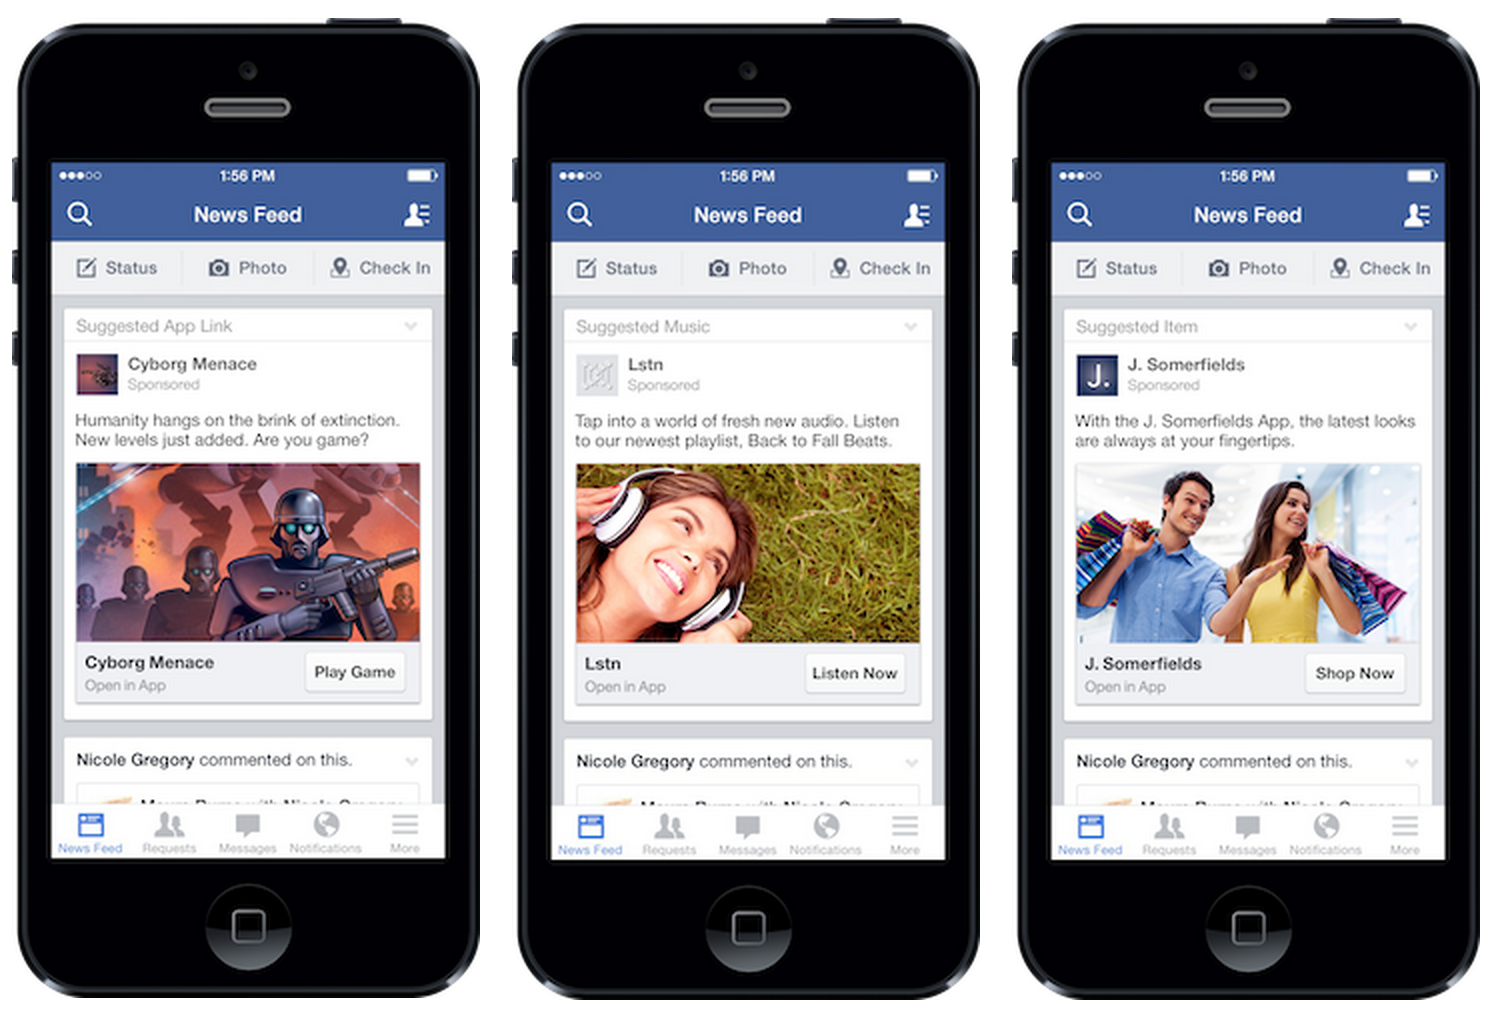 Mockup App Skiilight Interactive Facebook S Four Rules For Going Mobile